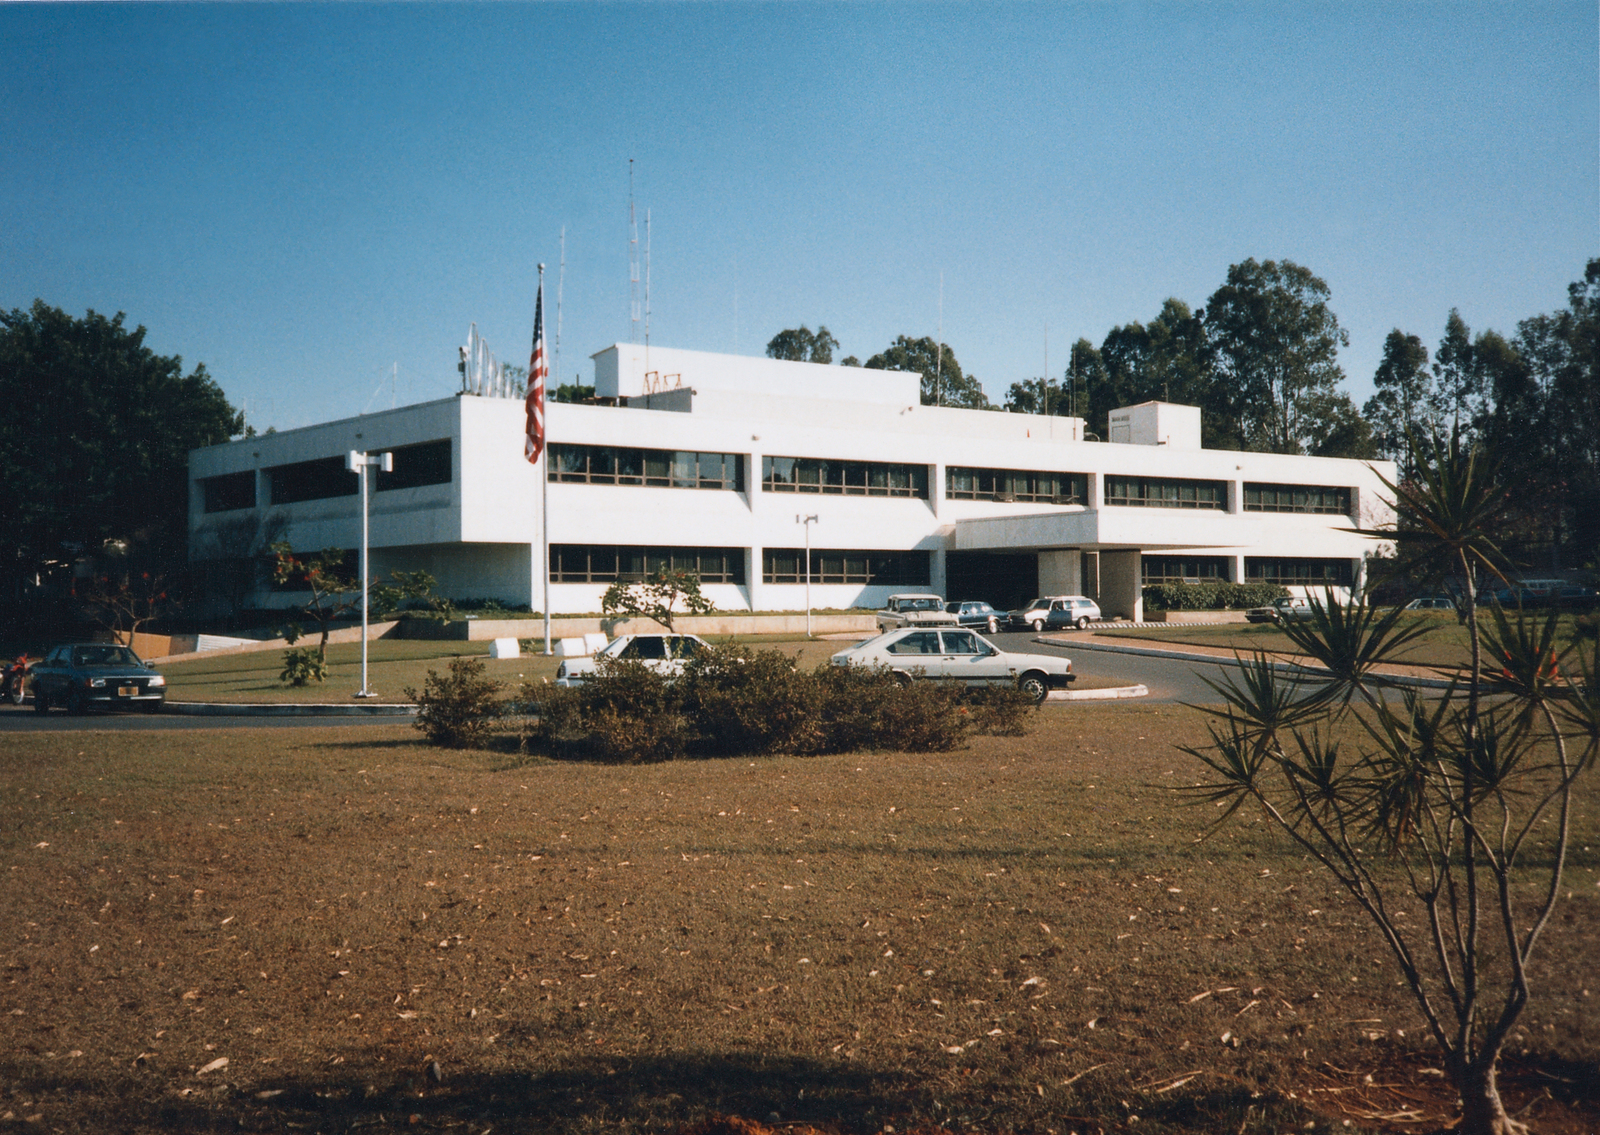 Brasilia - Chancery Office Building - 1987